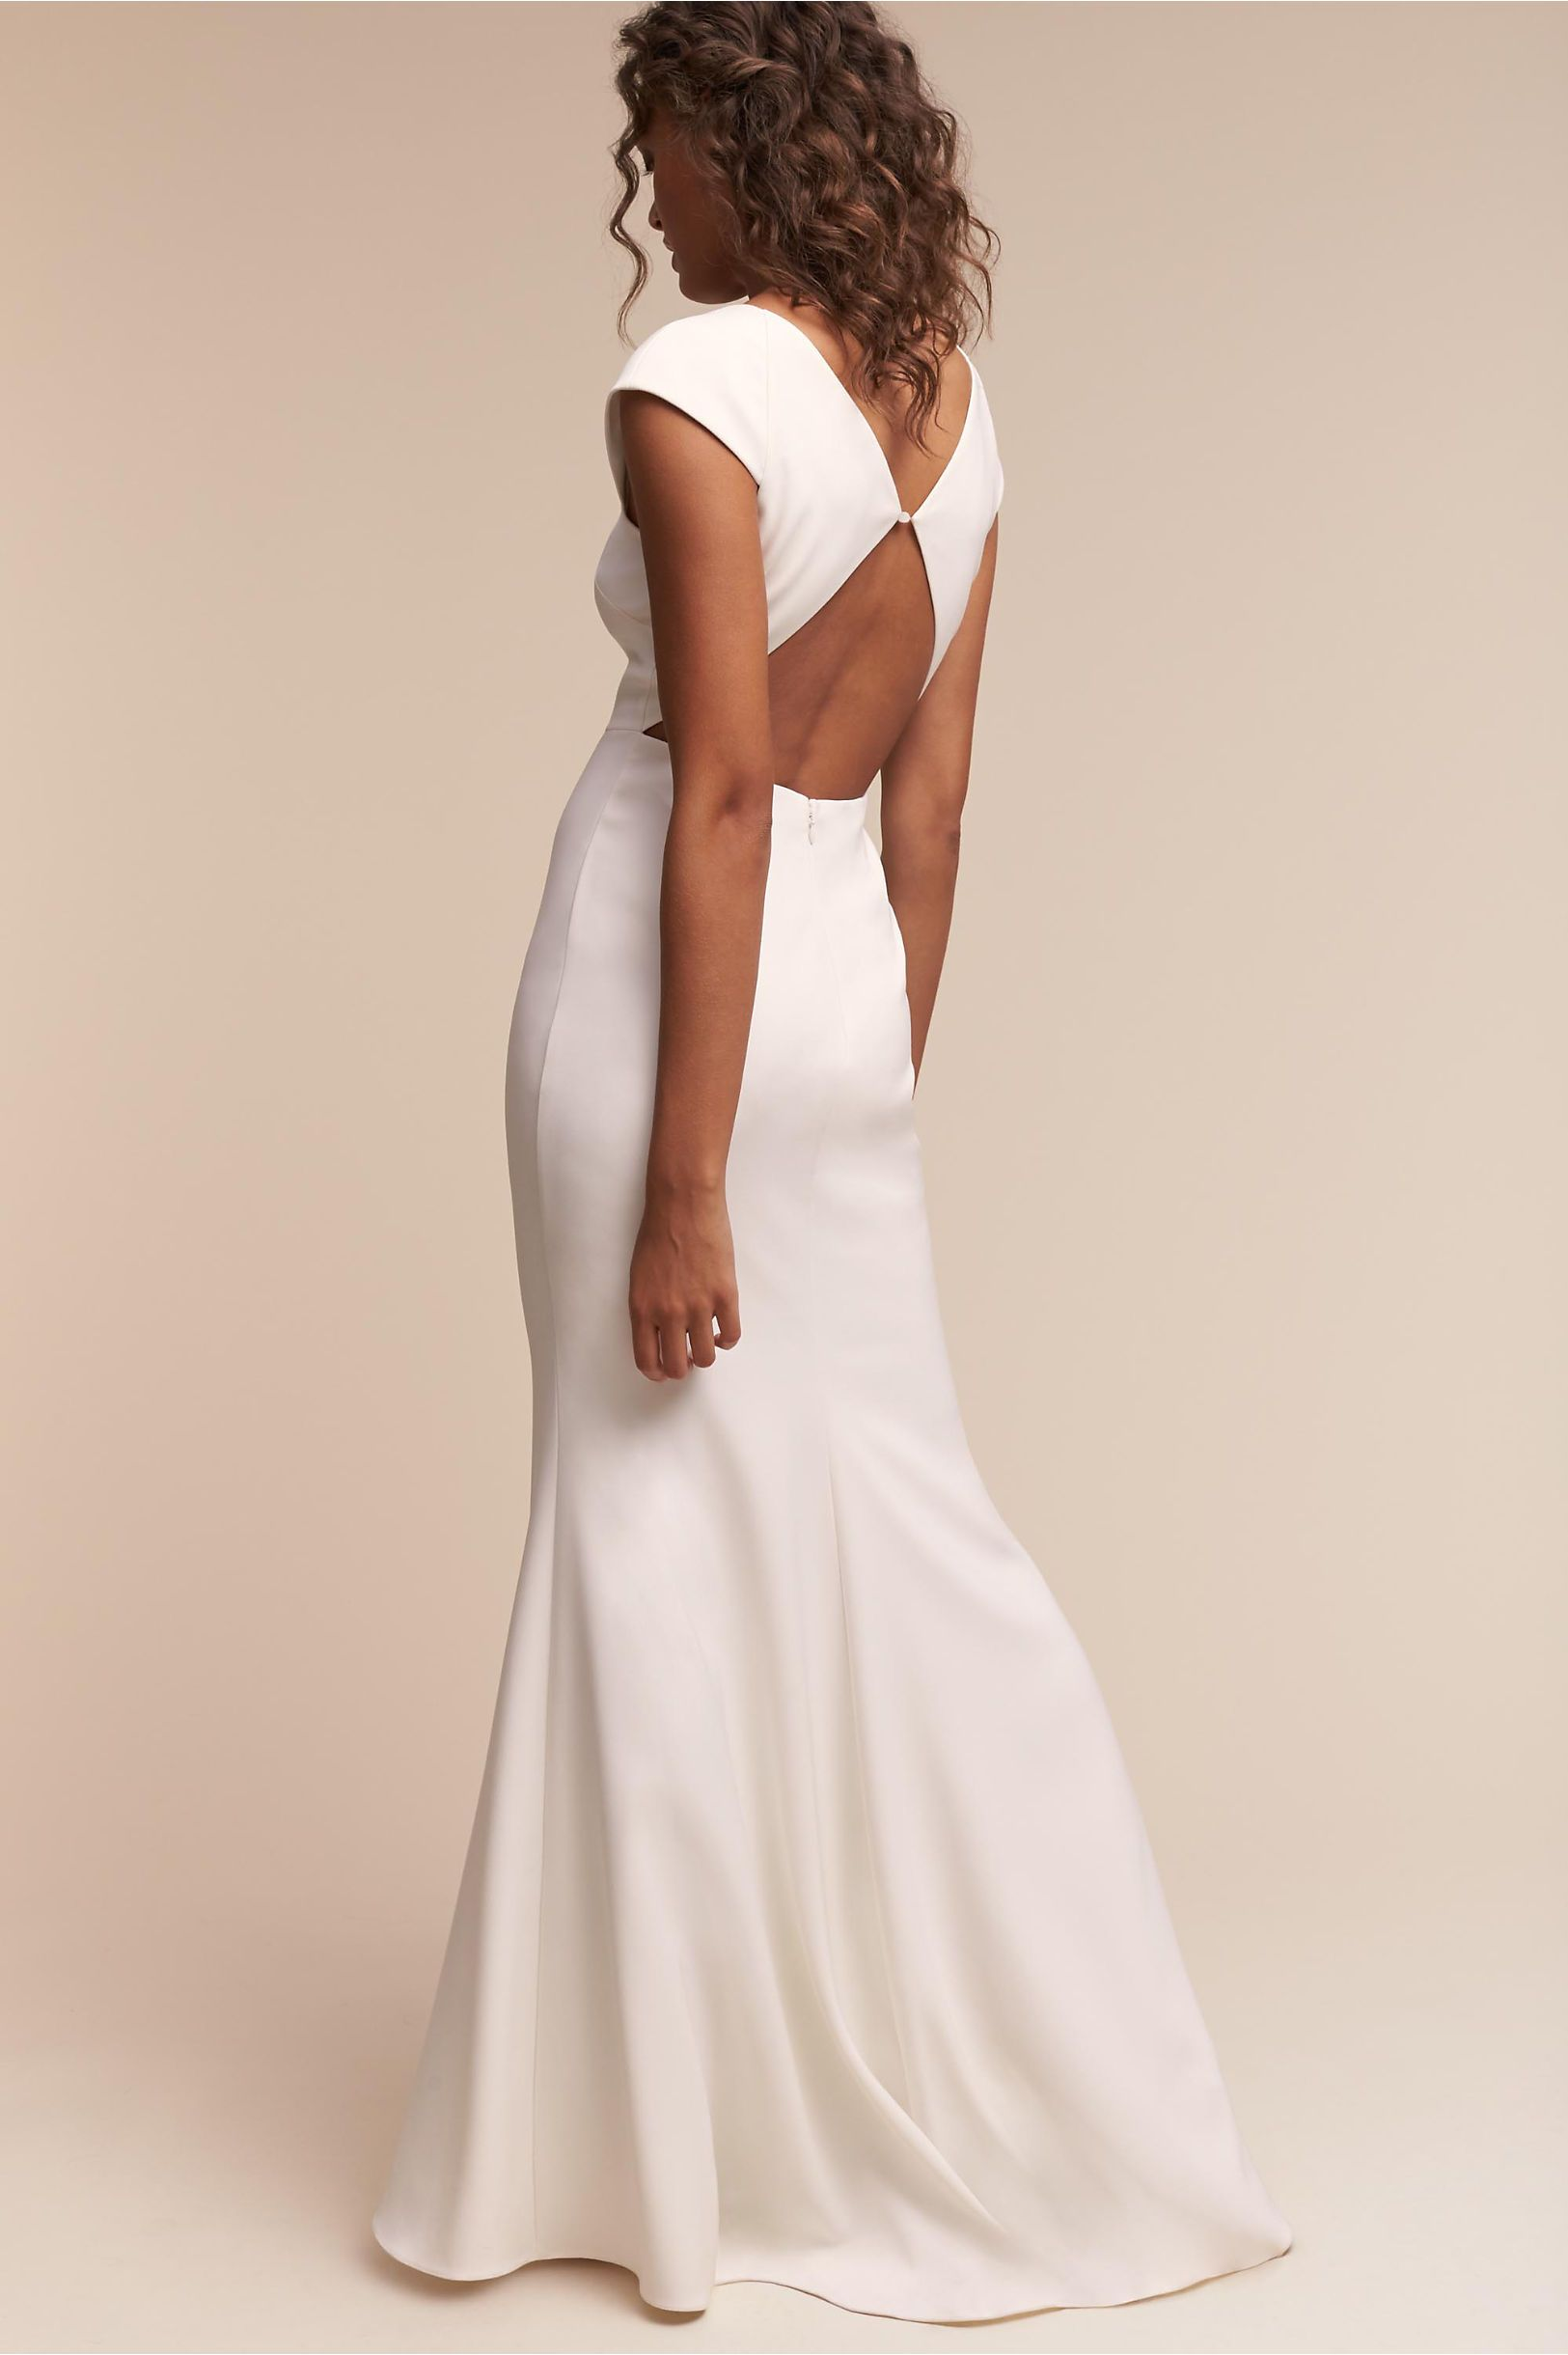 BHLDN\'s Badgley Mischka Sawyer Gown in Ivory | casamento na praia ...